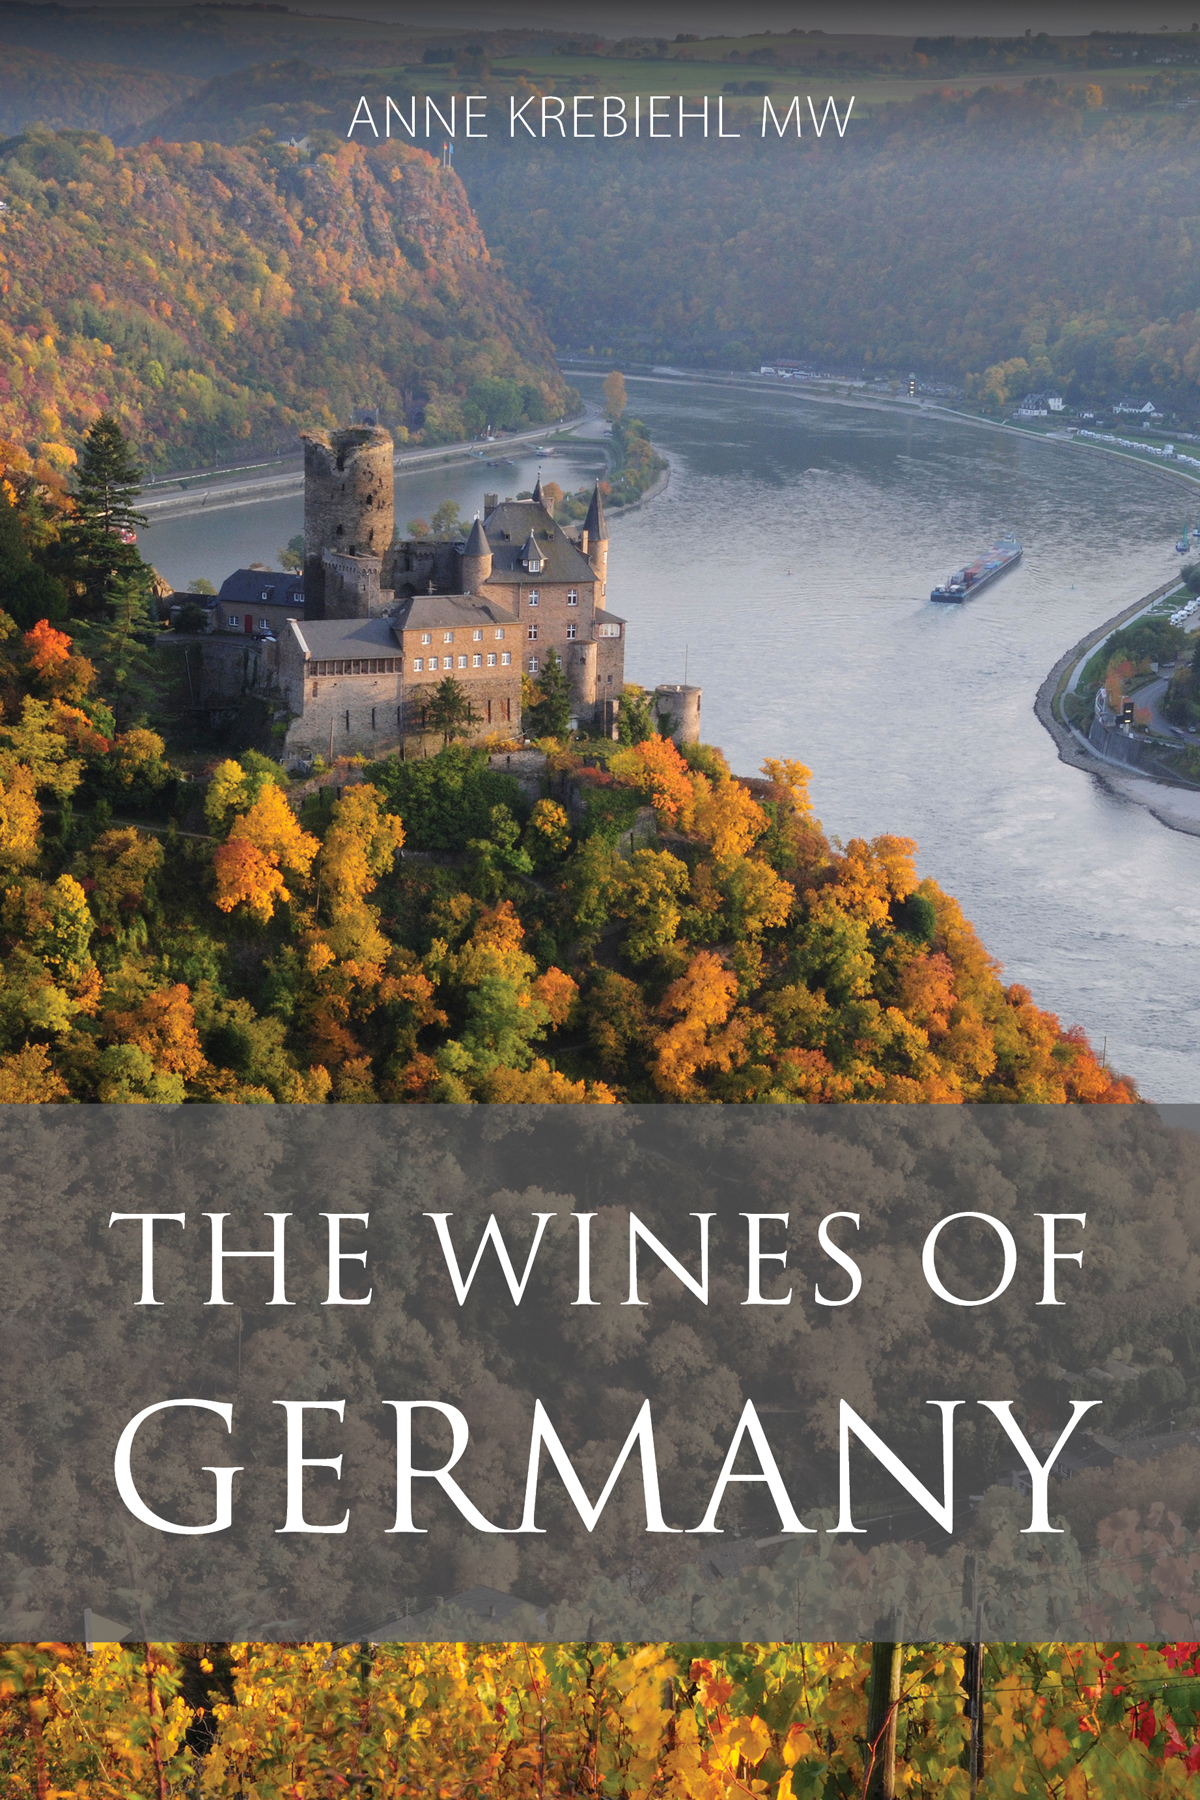 The wines of Germany